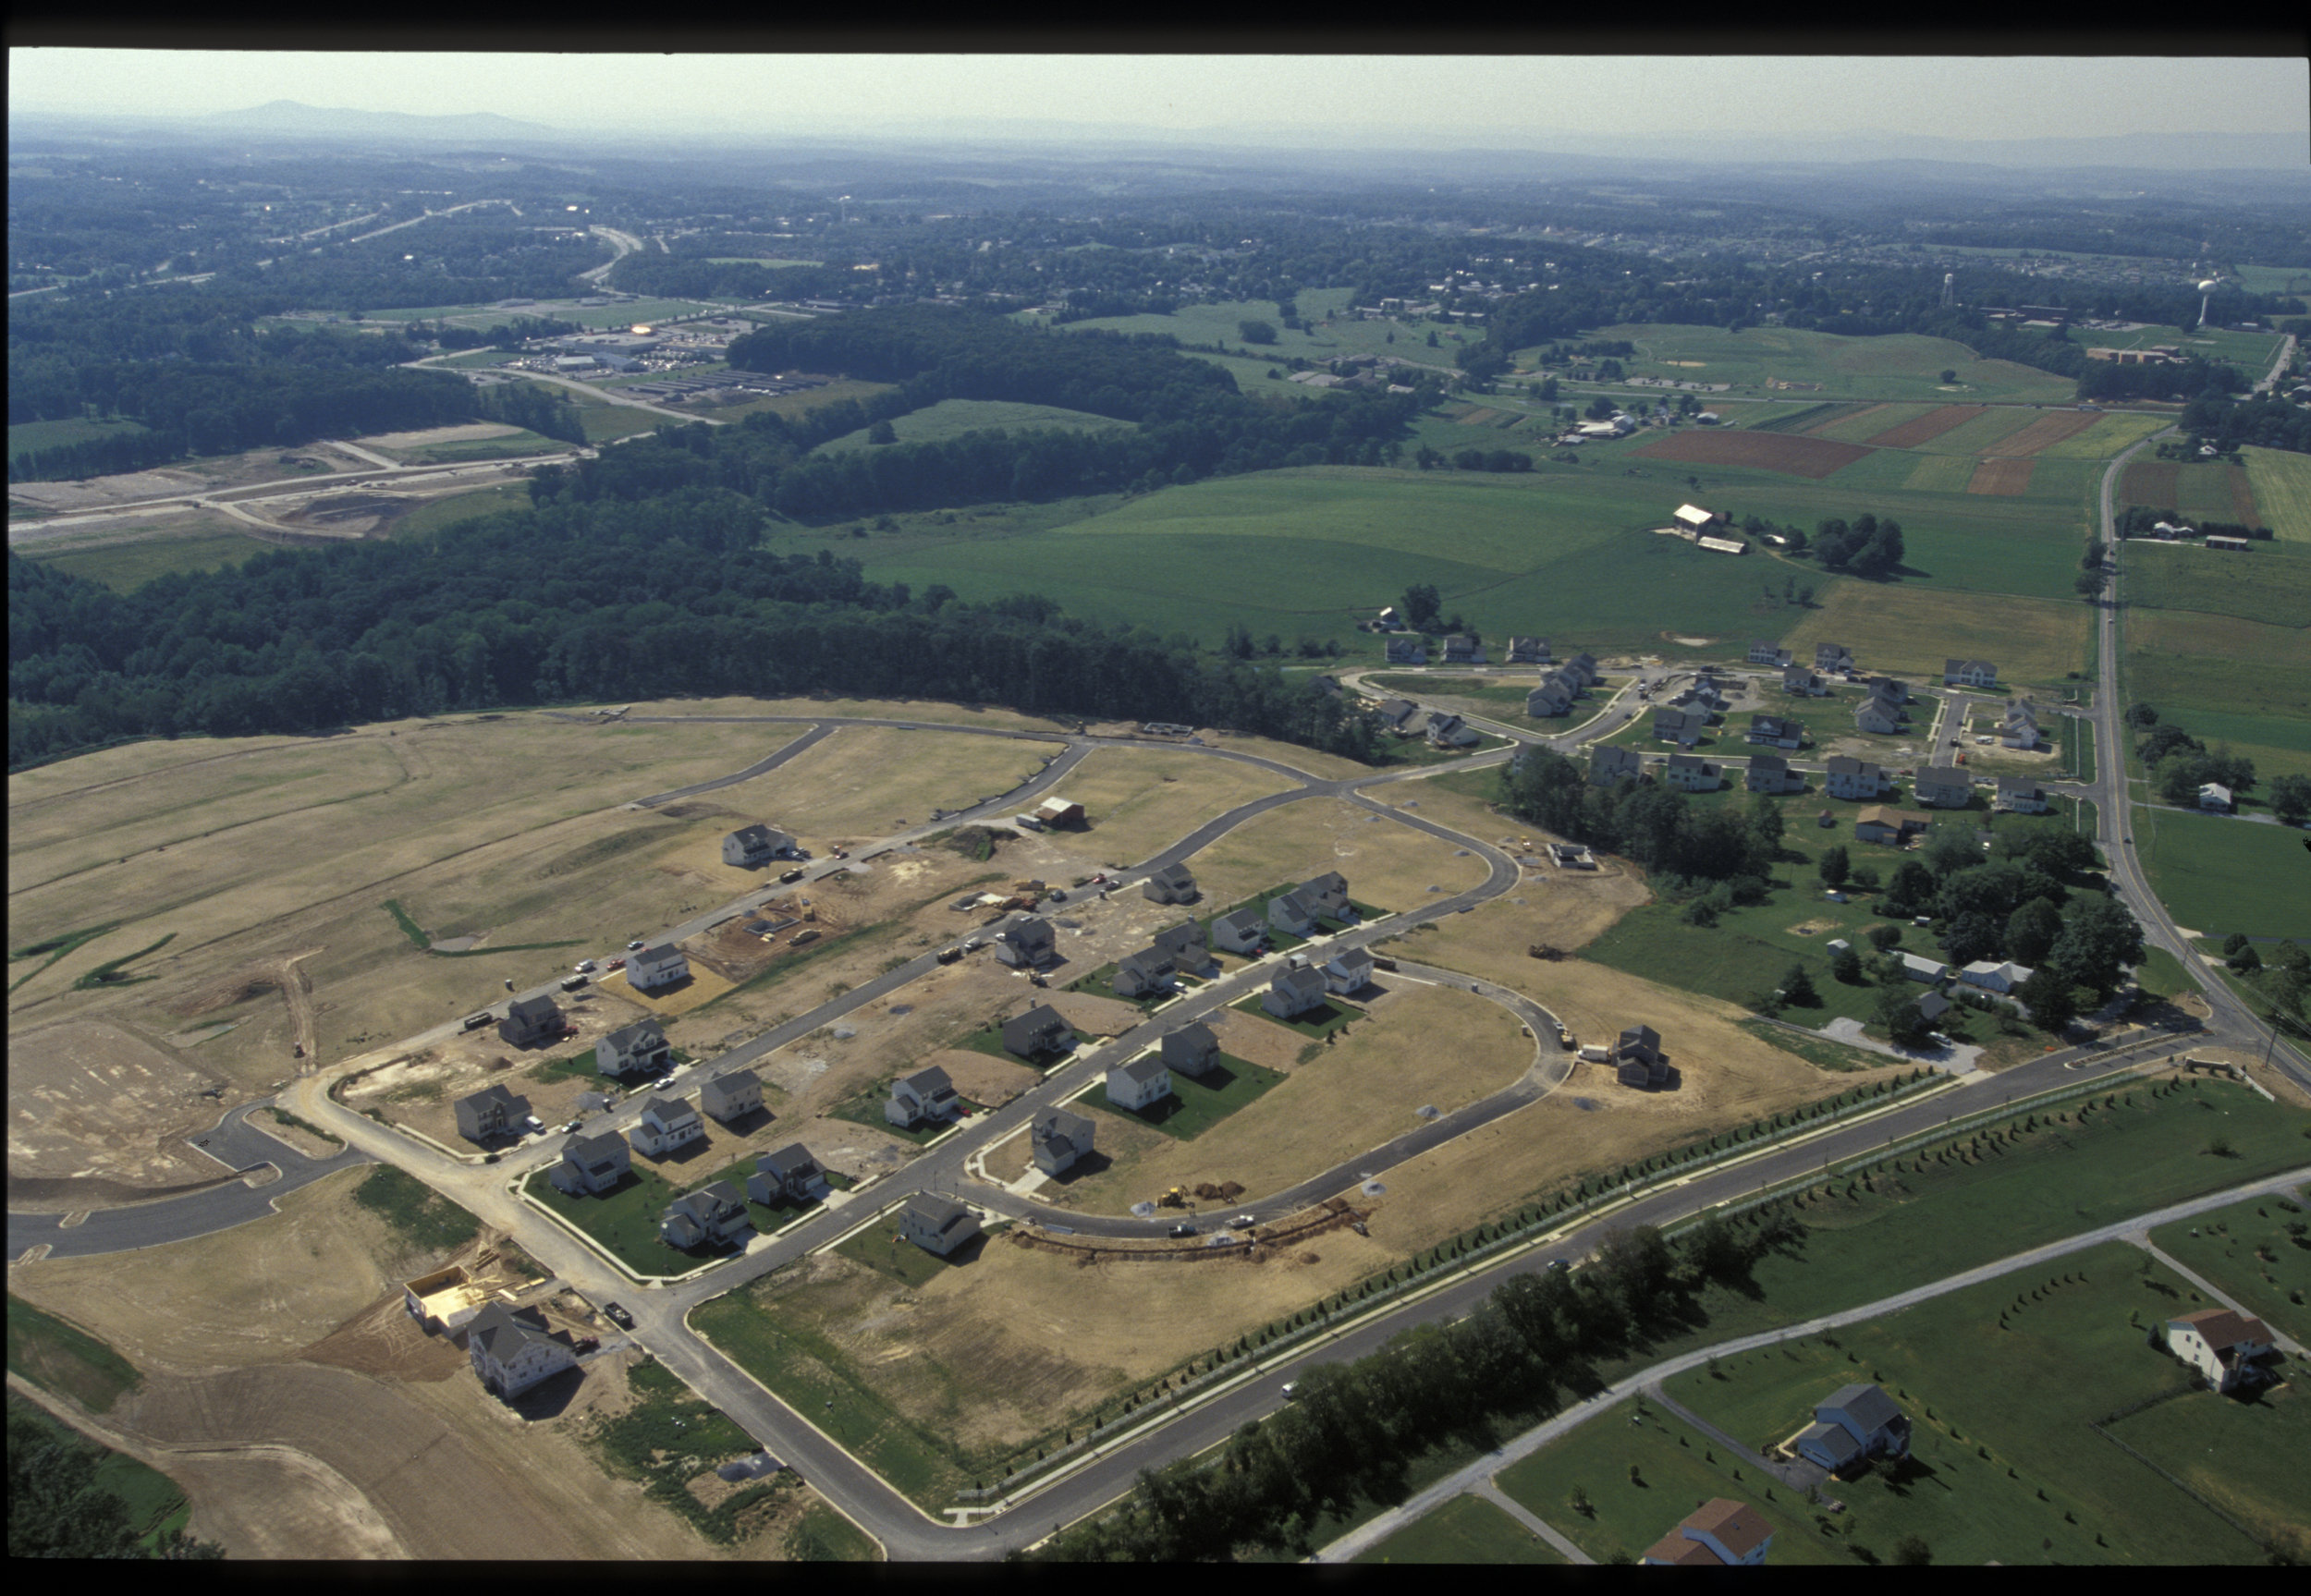 The image shows housing development and farmland in the background. Photo by Edwin Remsberg.